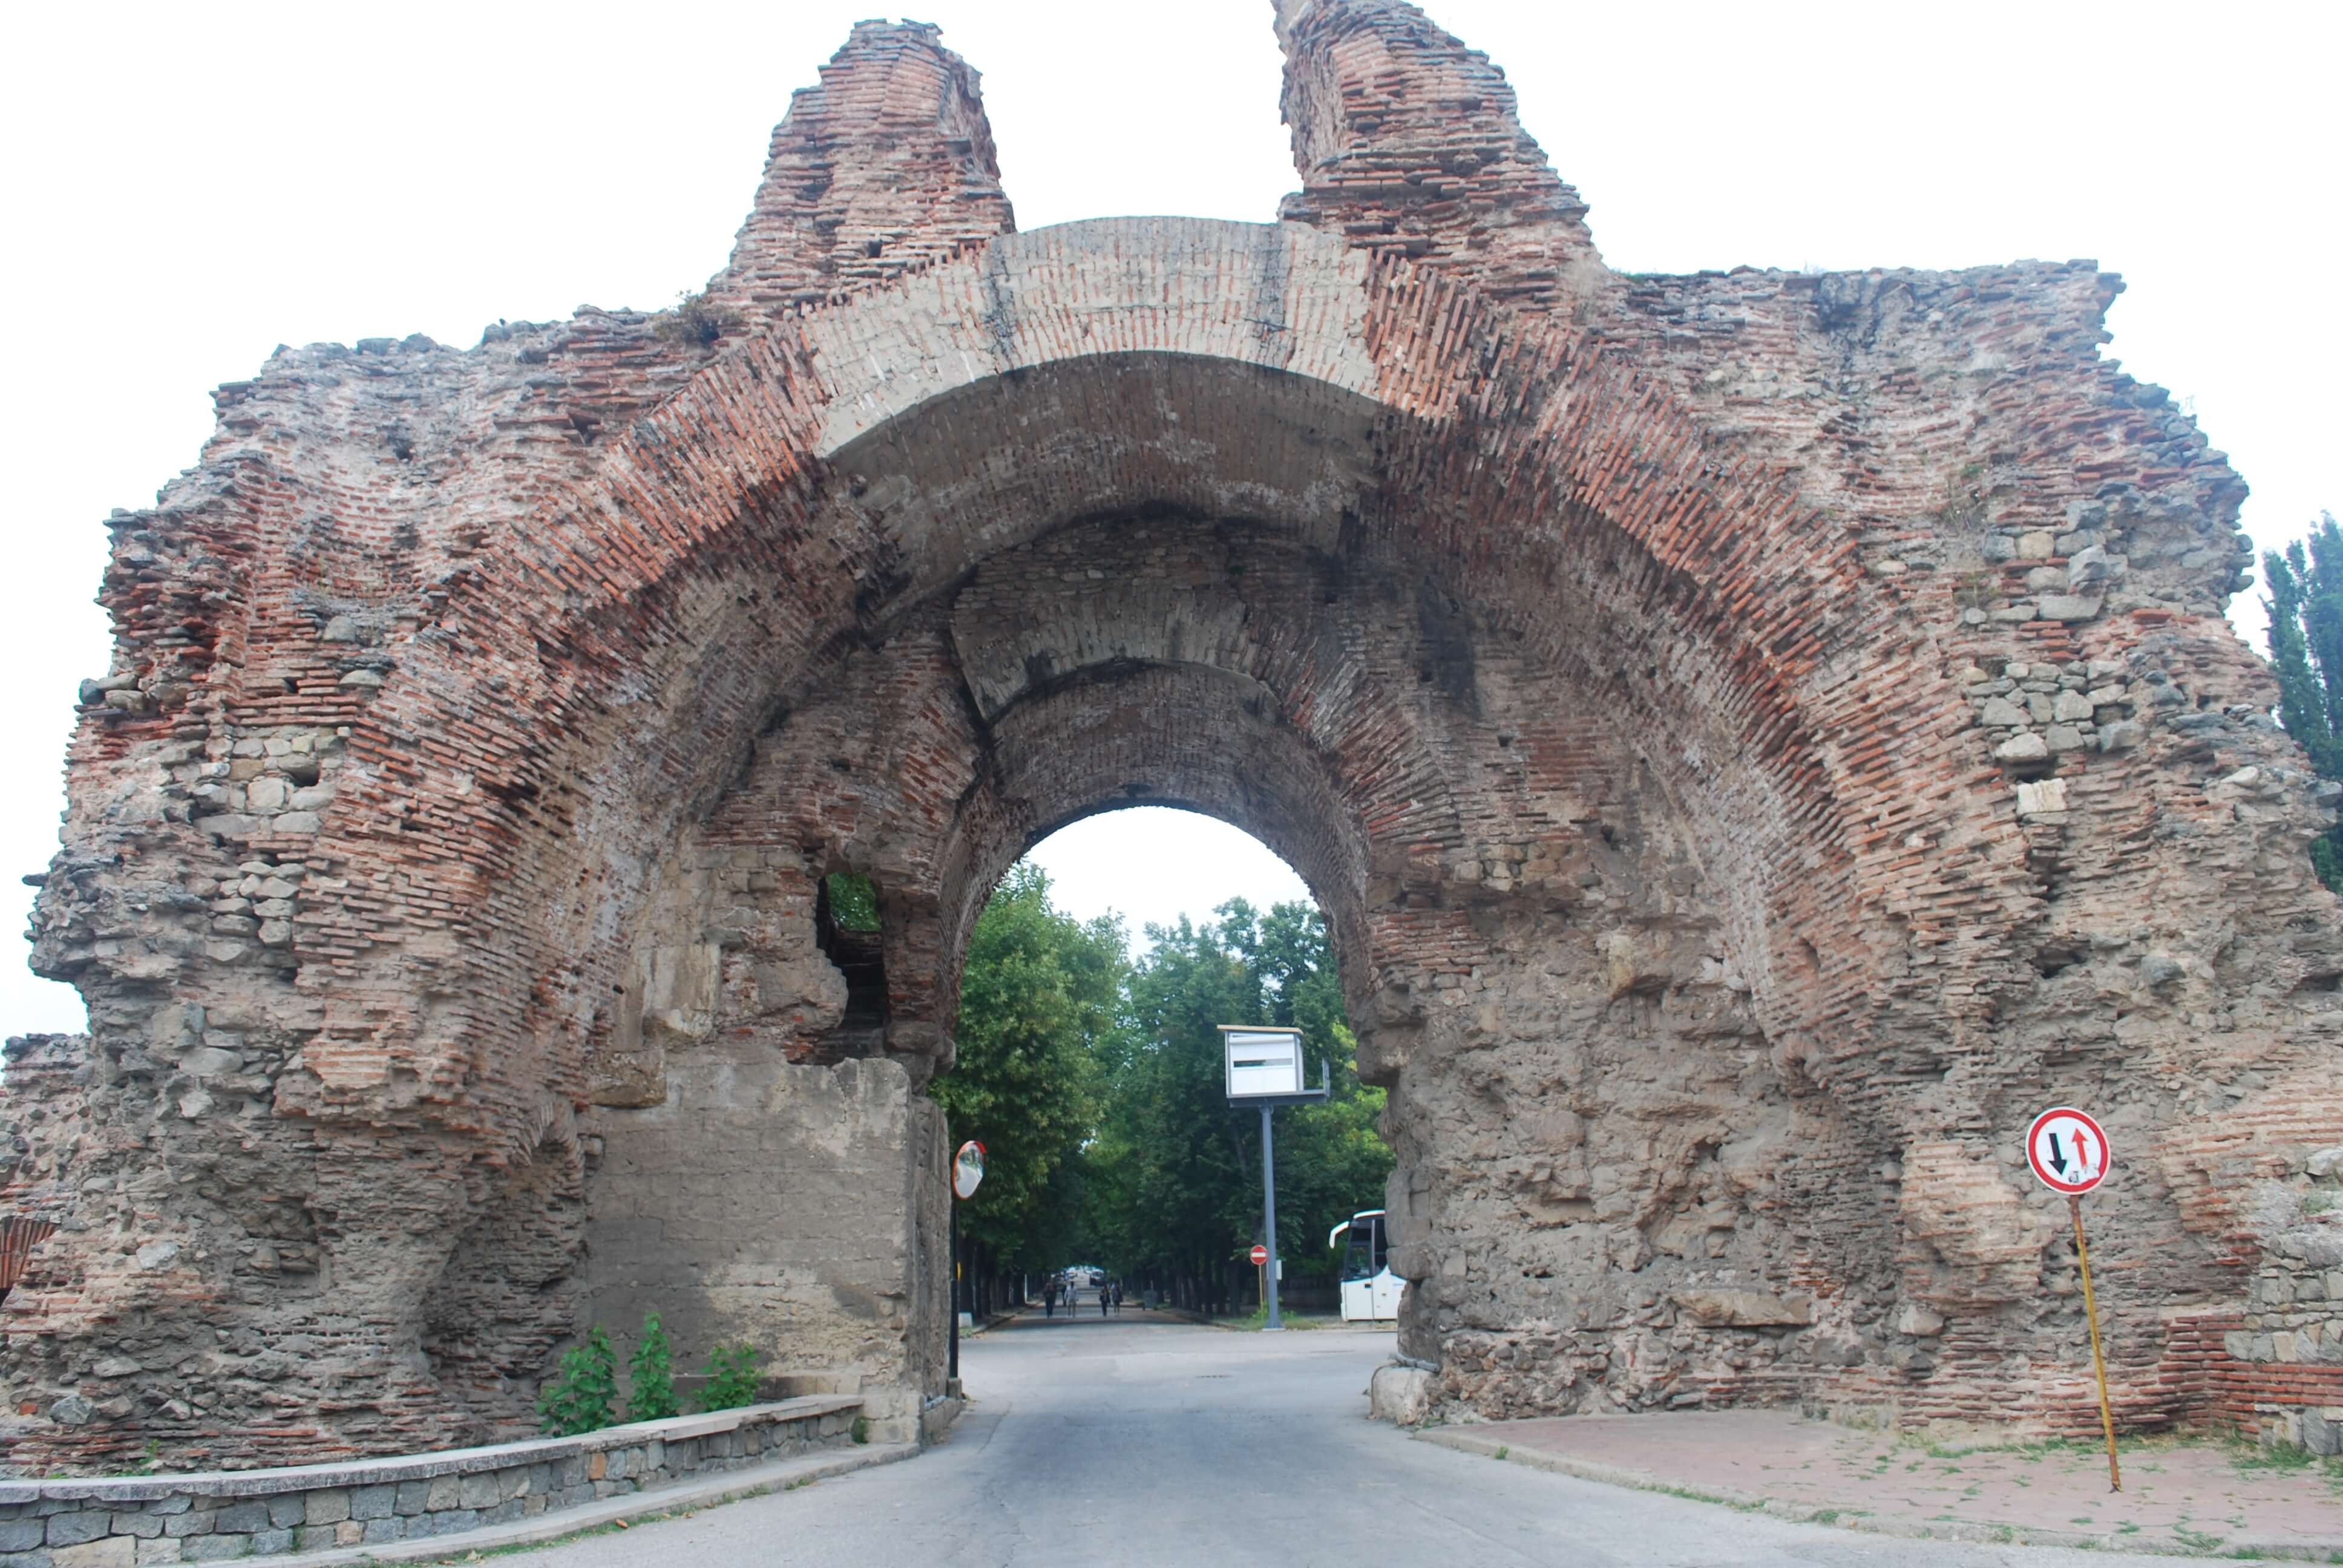 The southern gate of Hisarya - the Camels